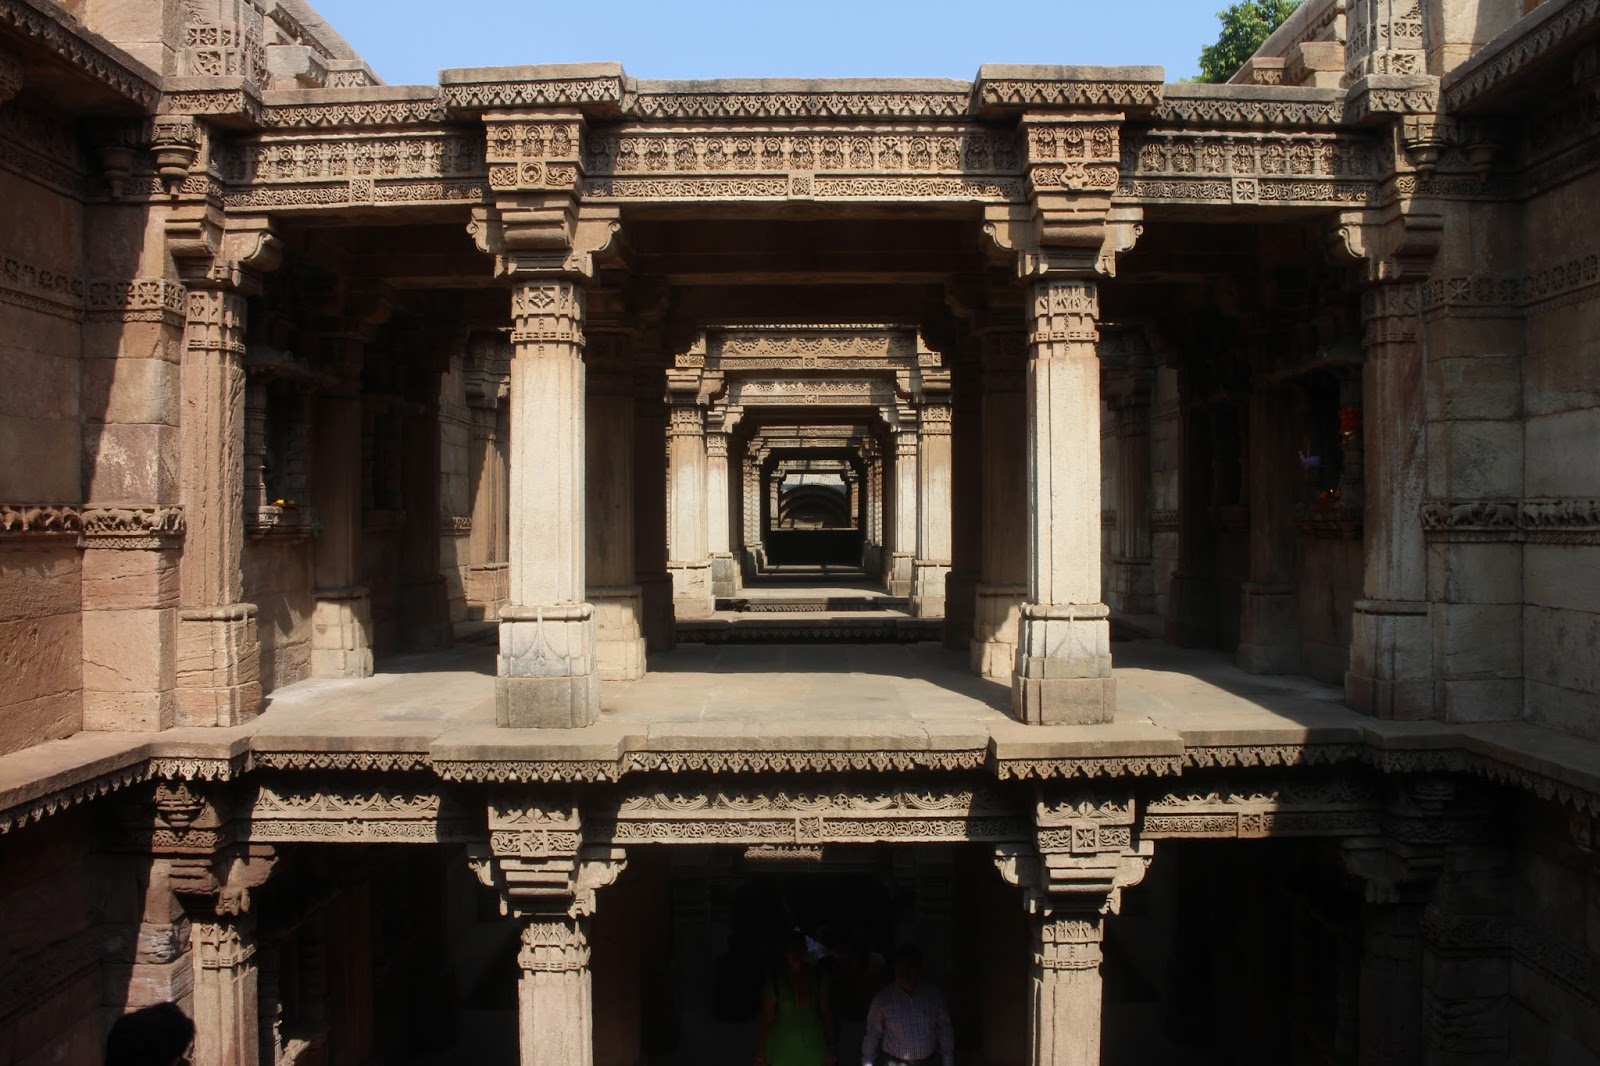 Kitchen King Ahmedabad My World Ahmedabad Chronicles I Adalaj Ni Vav